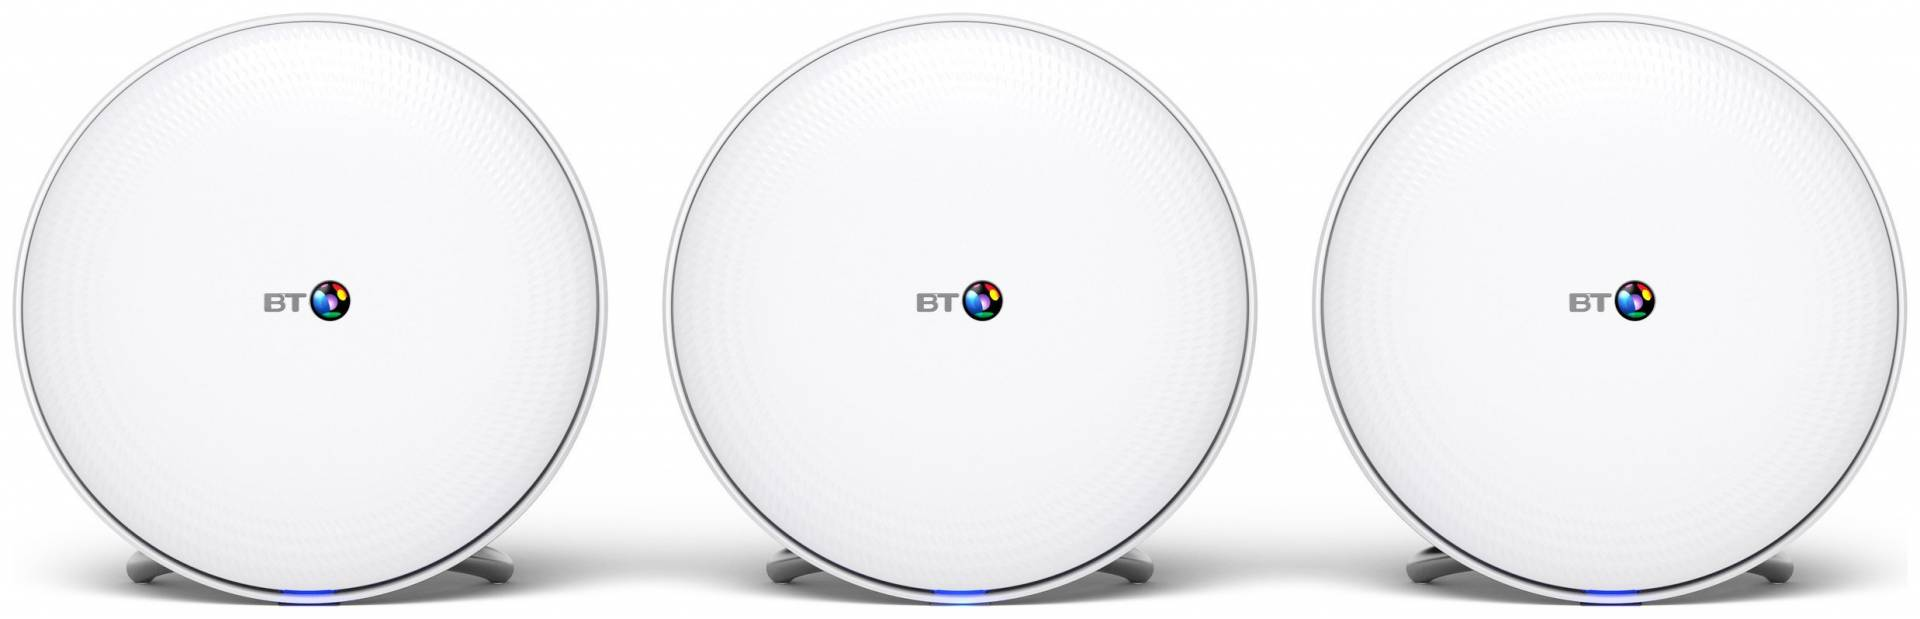 BT Whole Home Wi-Fi Triple Pack from BT